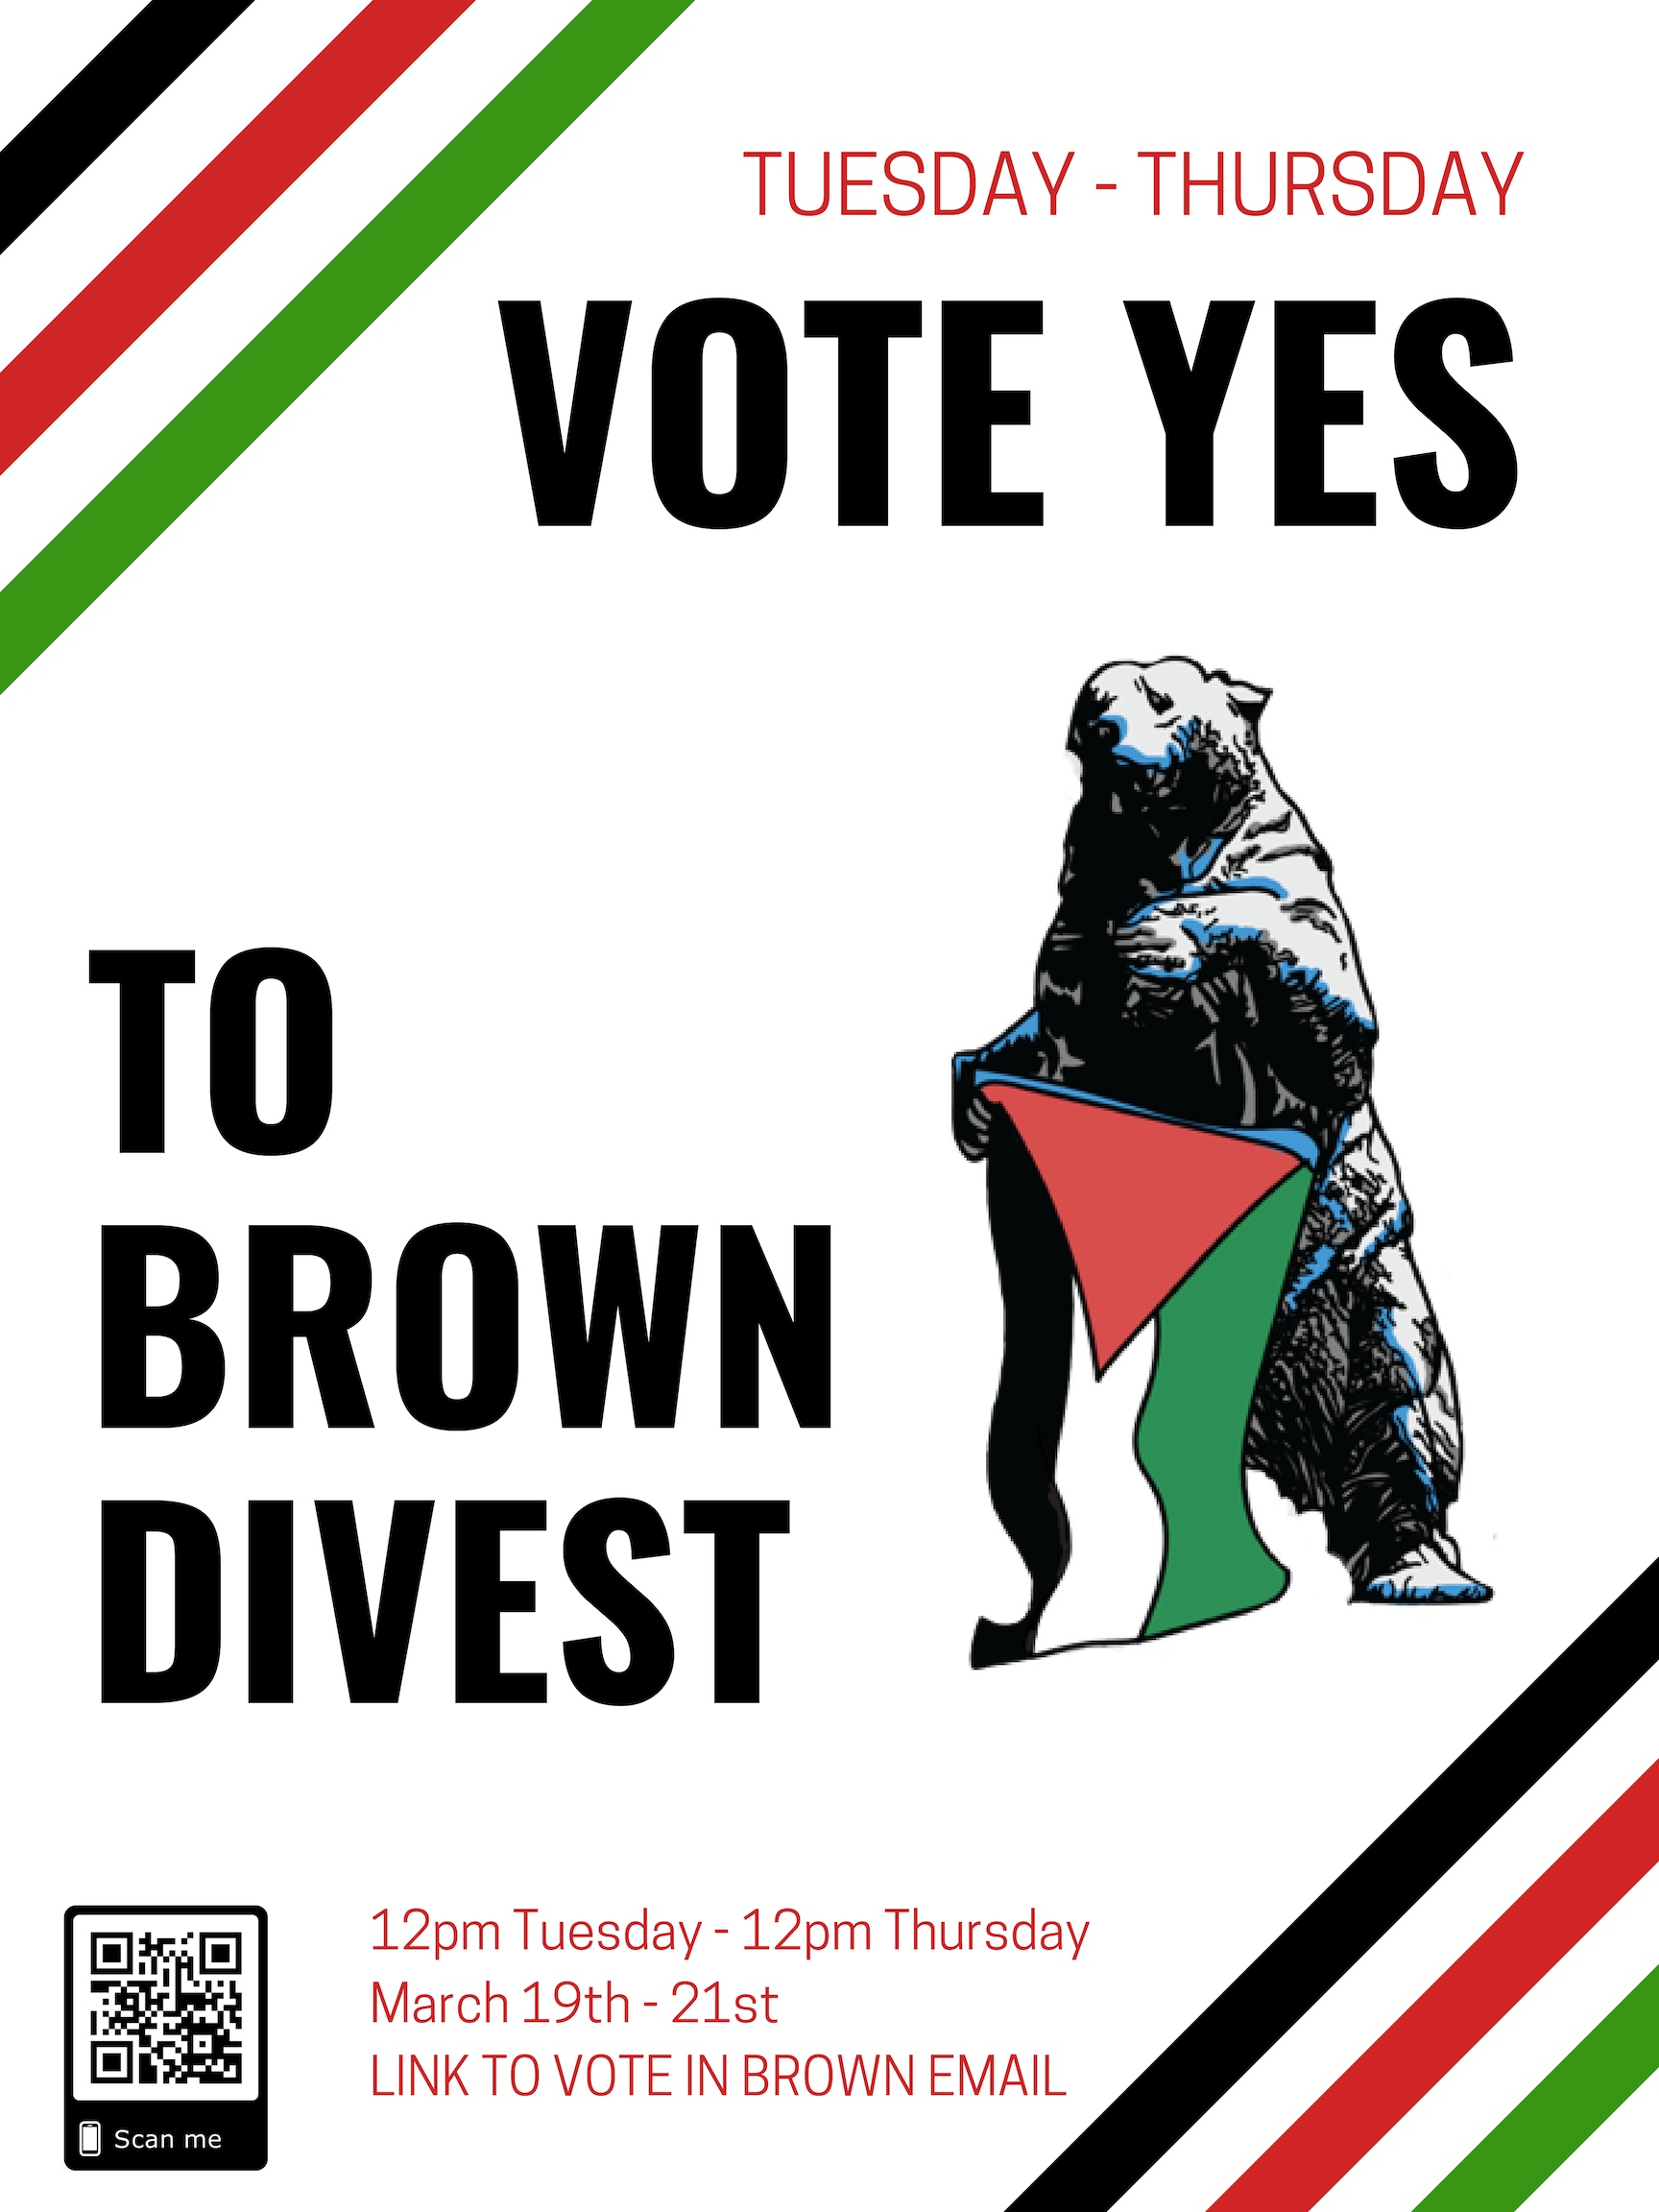 Brown Divest Referendum: - Should the Brown University administration divest all stocks, funds, endowment, and other monetary instruments from companies complicit in human rights abuses in Palestine and establish a means of implementing financial transparency and student oversight of the University's investments?The following criteria would be applied for divestment:a. Provide products or services that contribute to the maintenance of the Israeli military occupation of Gaza and the West Bankb. Provide products or services to the maintenance and expansion of Israeli settlements in the occupied Palestinian territoriesc. Establish facilities or operations in Israeli settlements in the occupied Palestinian territoriesd. Provide products or services that contribute to the maintenance and construction of the Separation Walle. Provide products or services that contribute to violent acts against either Israeli or Palestinian civilians